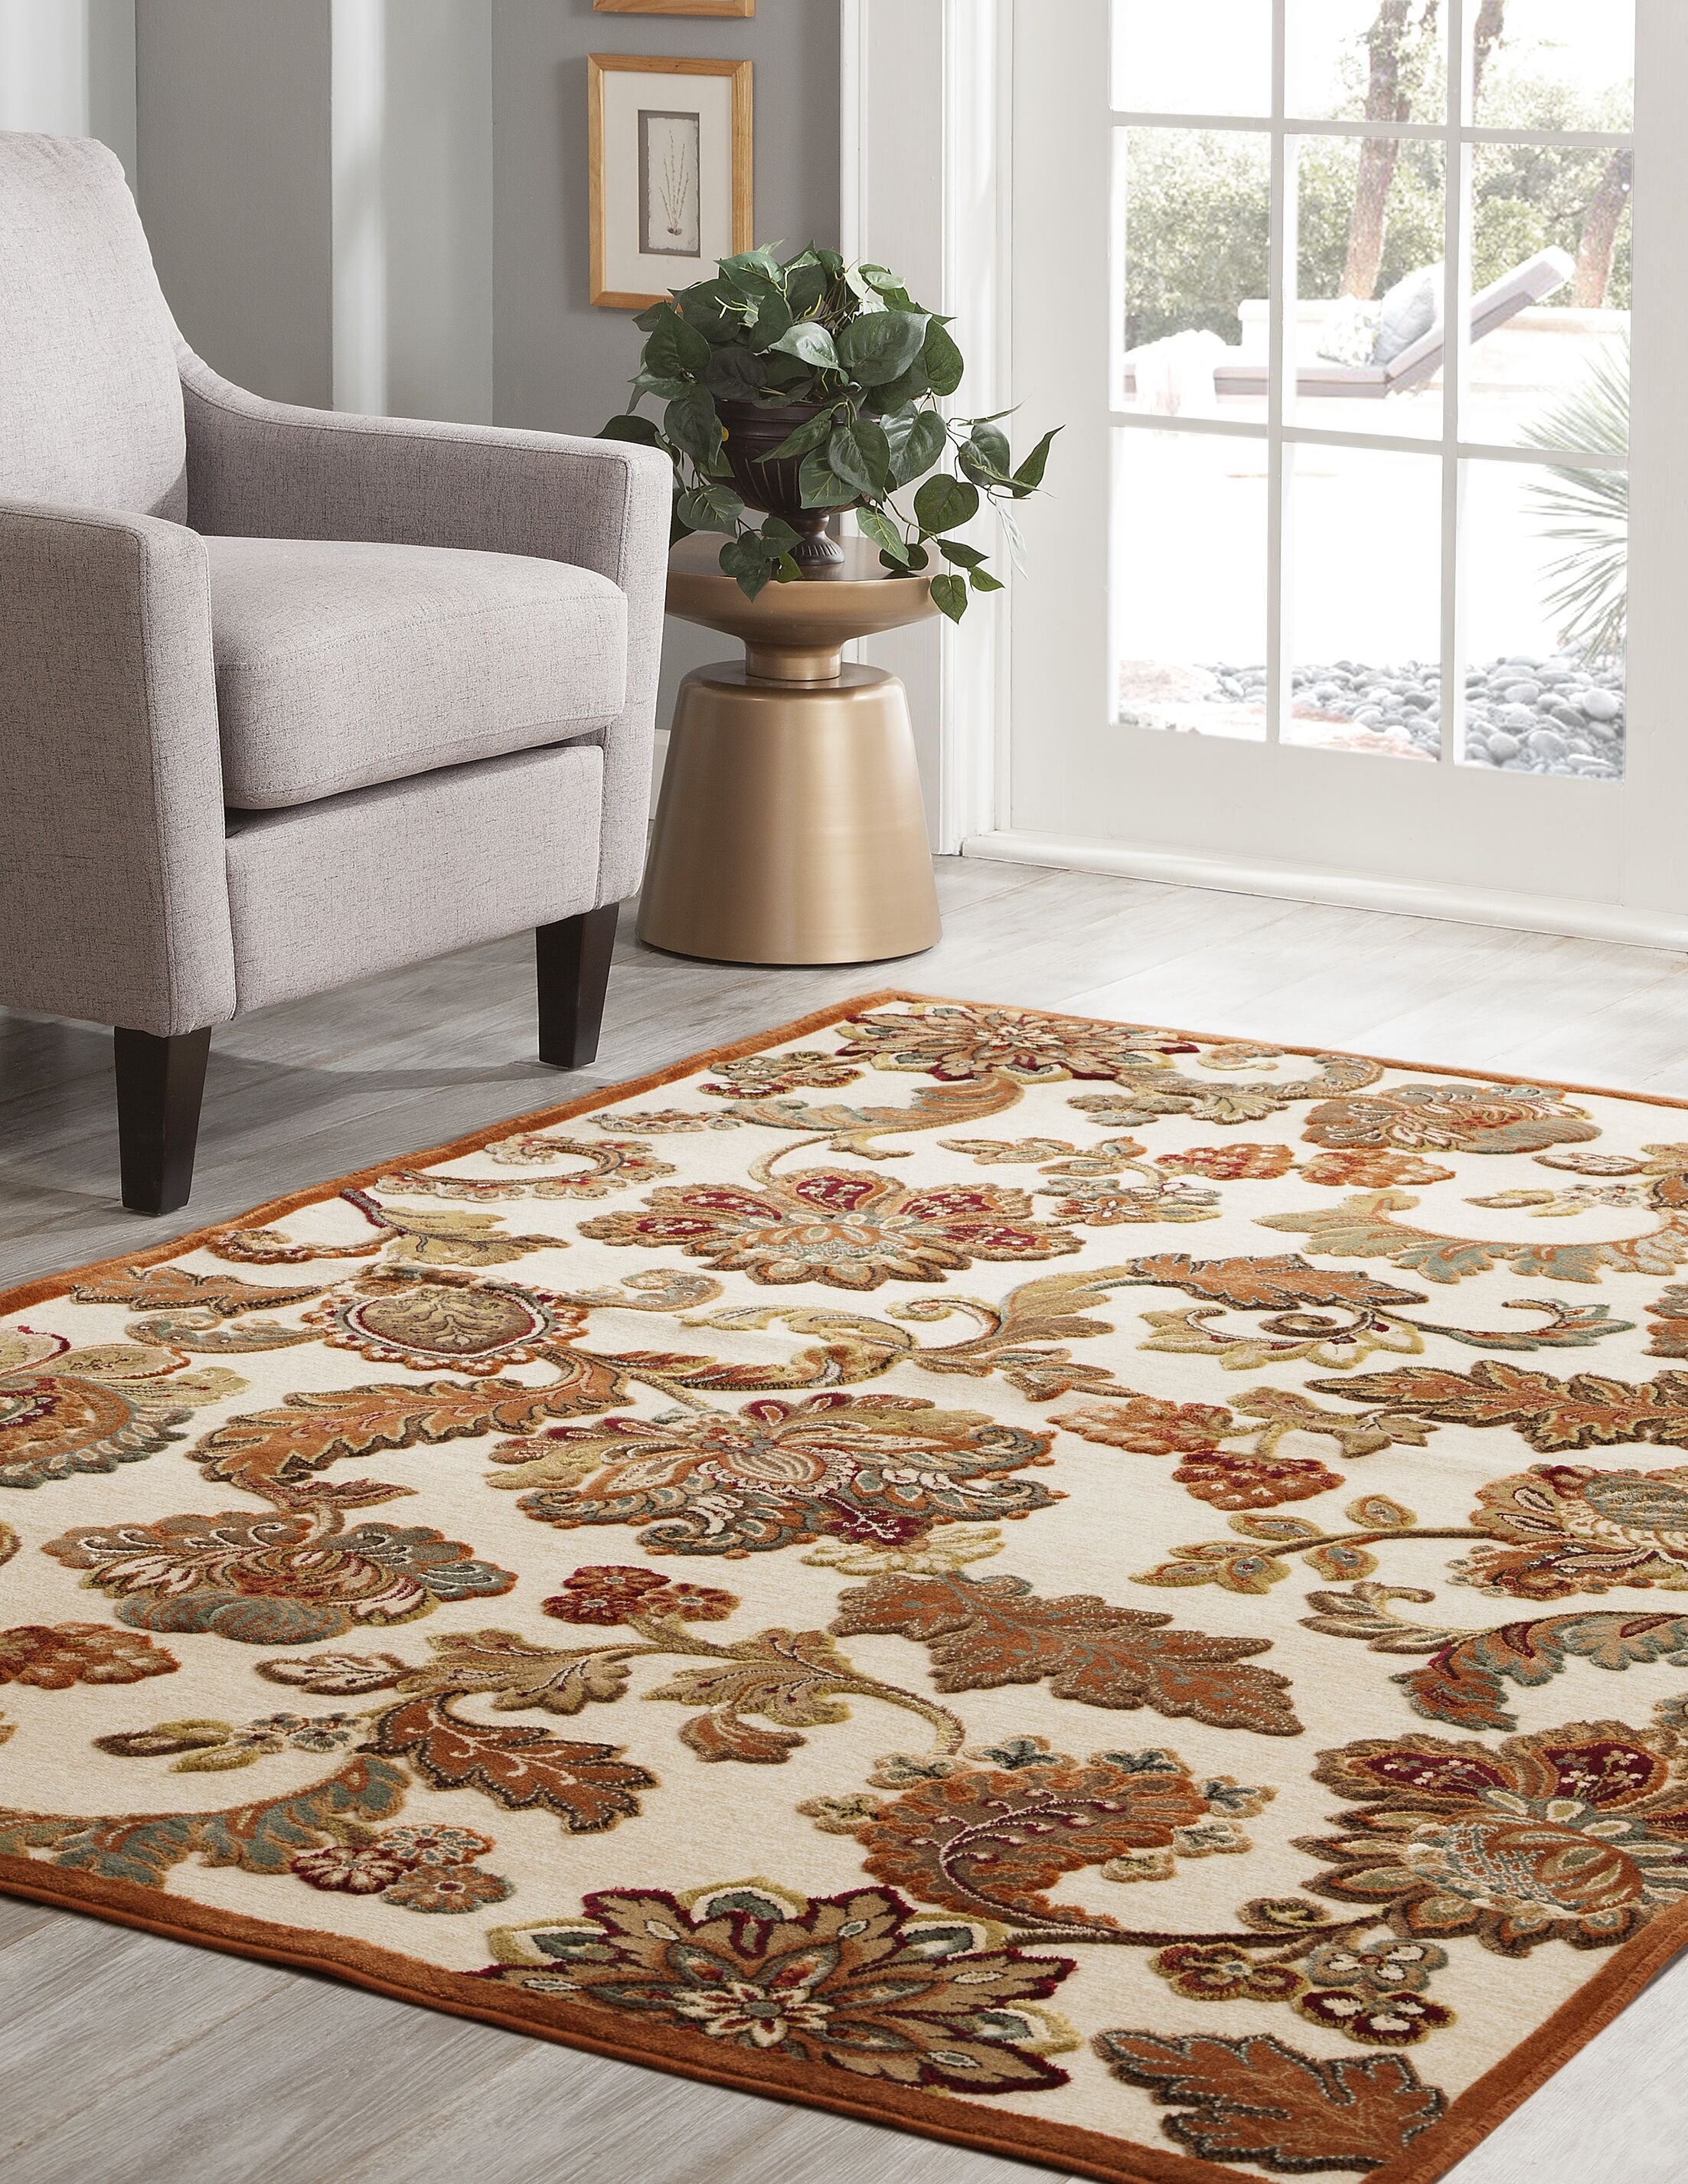 Louisa Ivory/Brown/Tan/Sage Area Rug Rug Size: 7'10